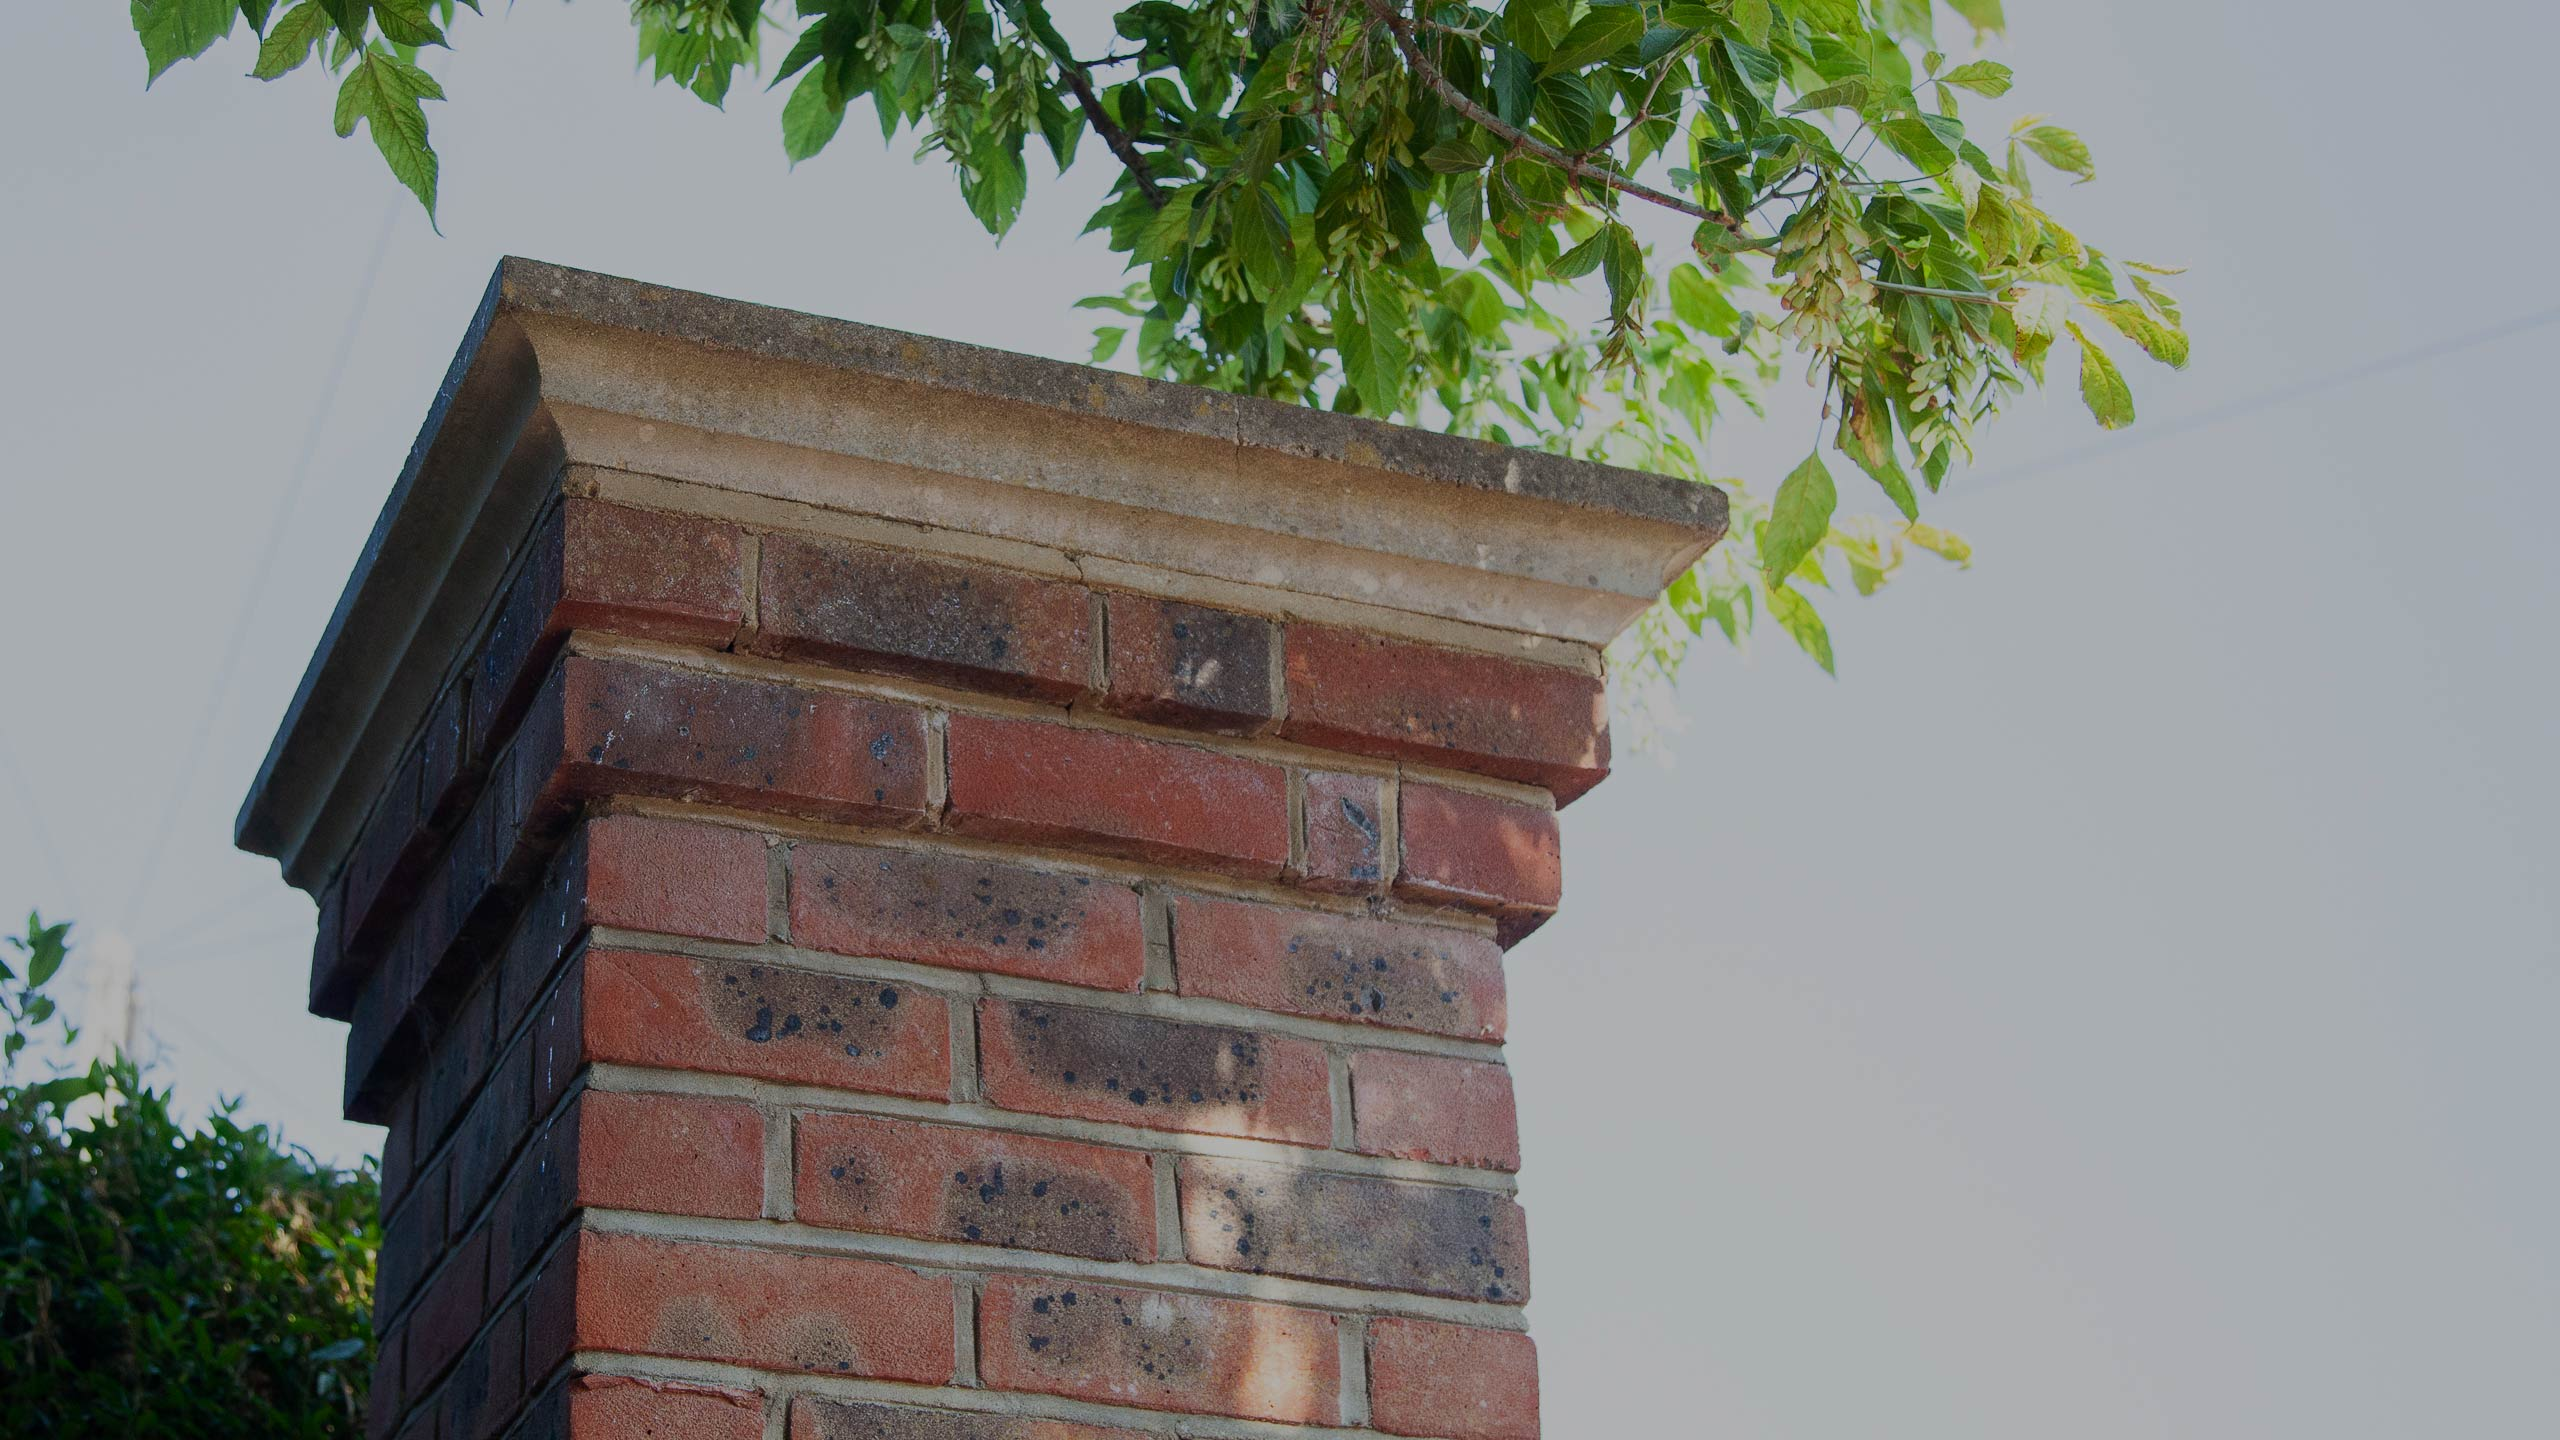 top of a chimney - property repairs and building work by RJ Steeles building contractors